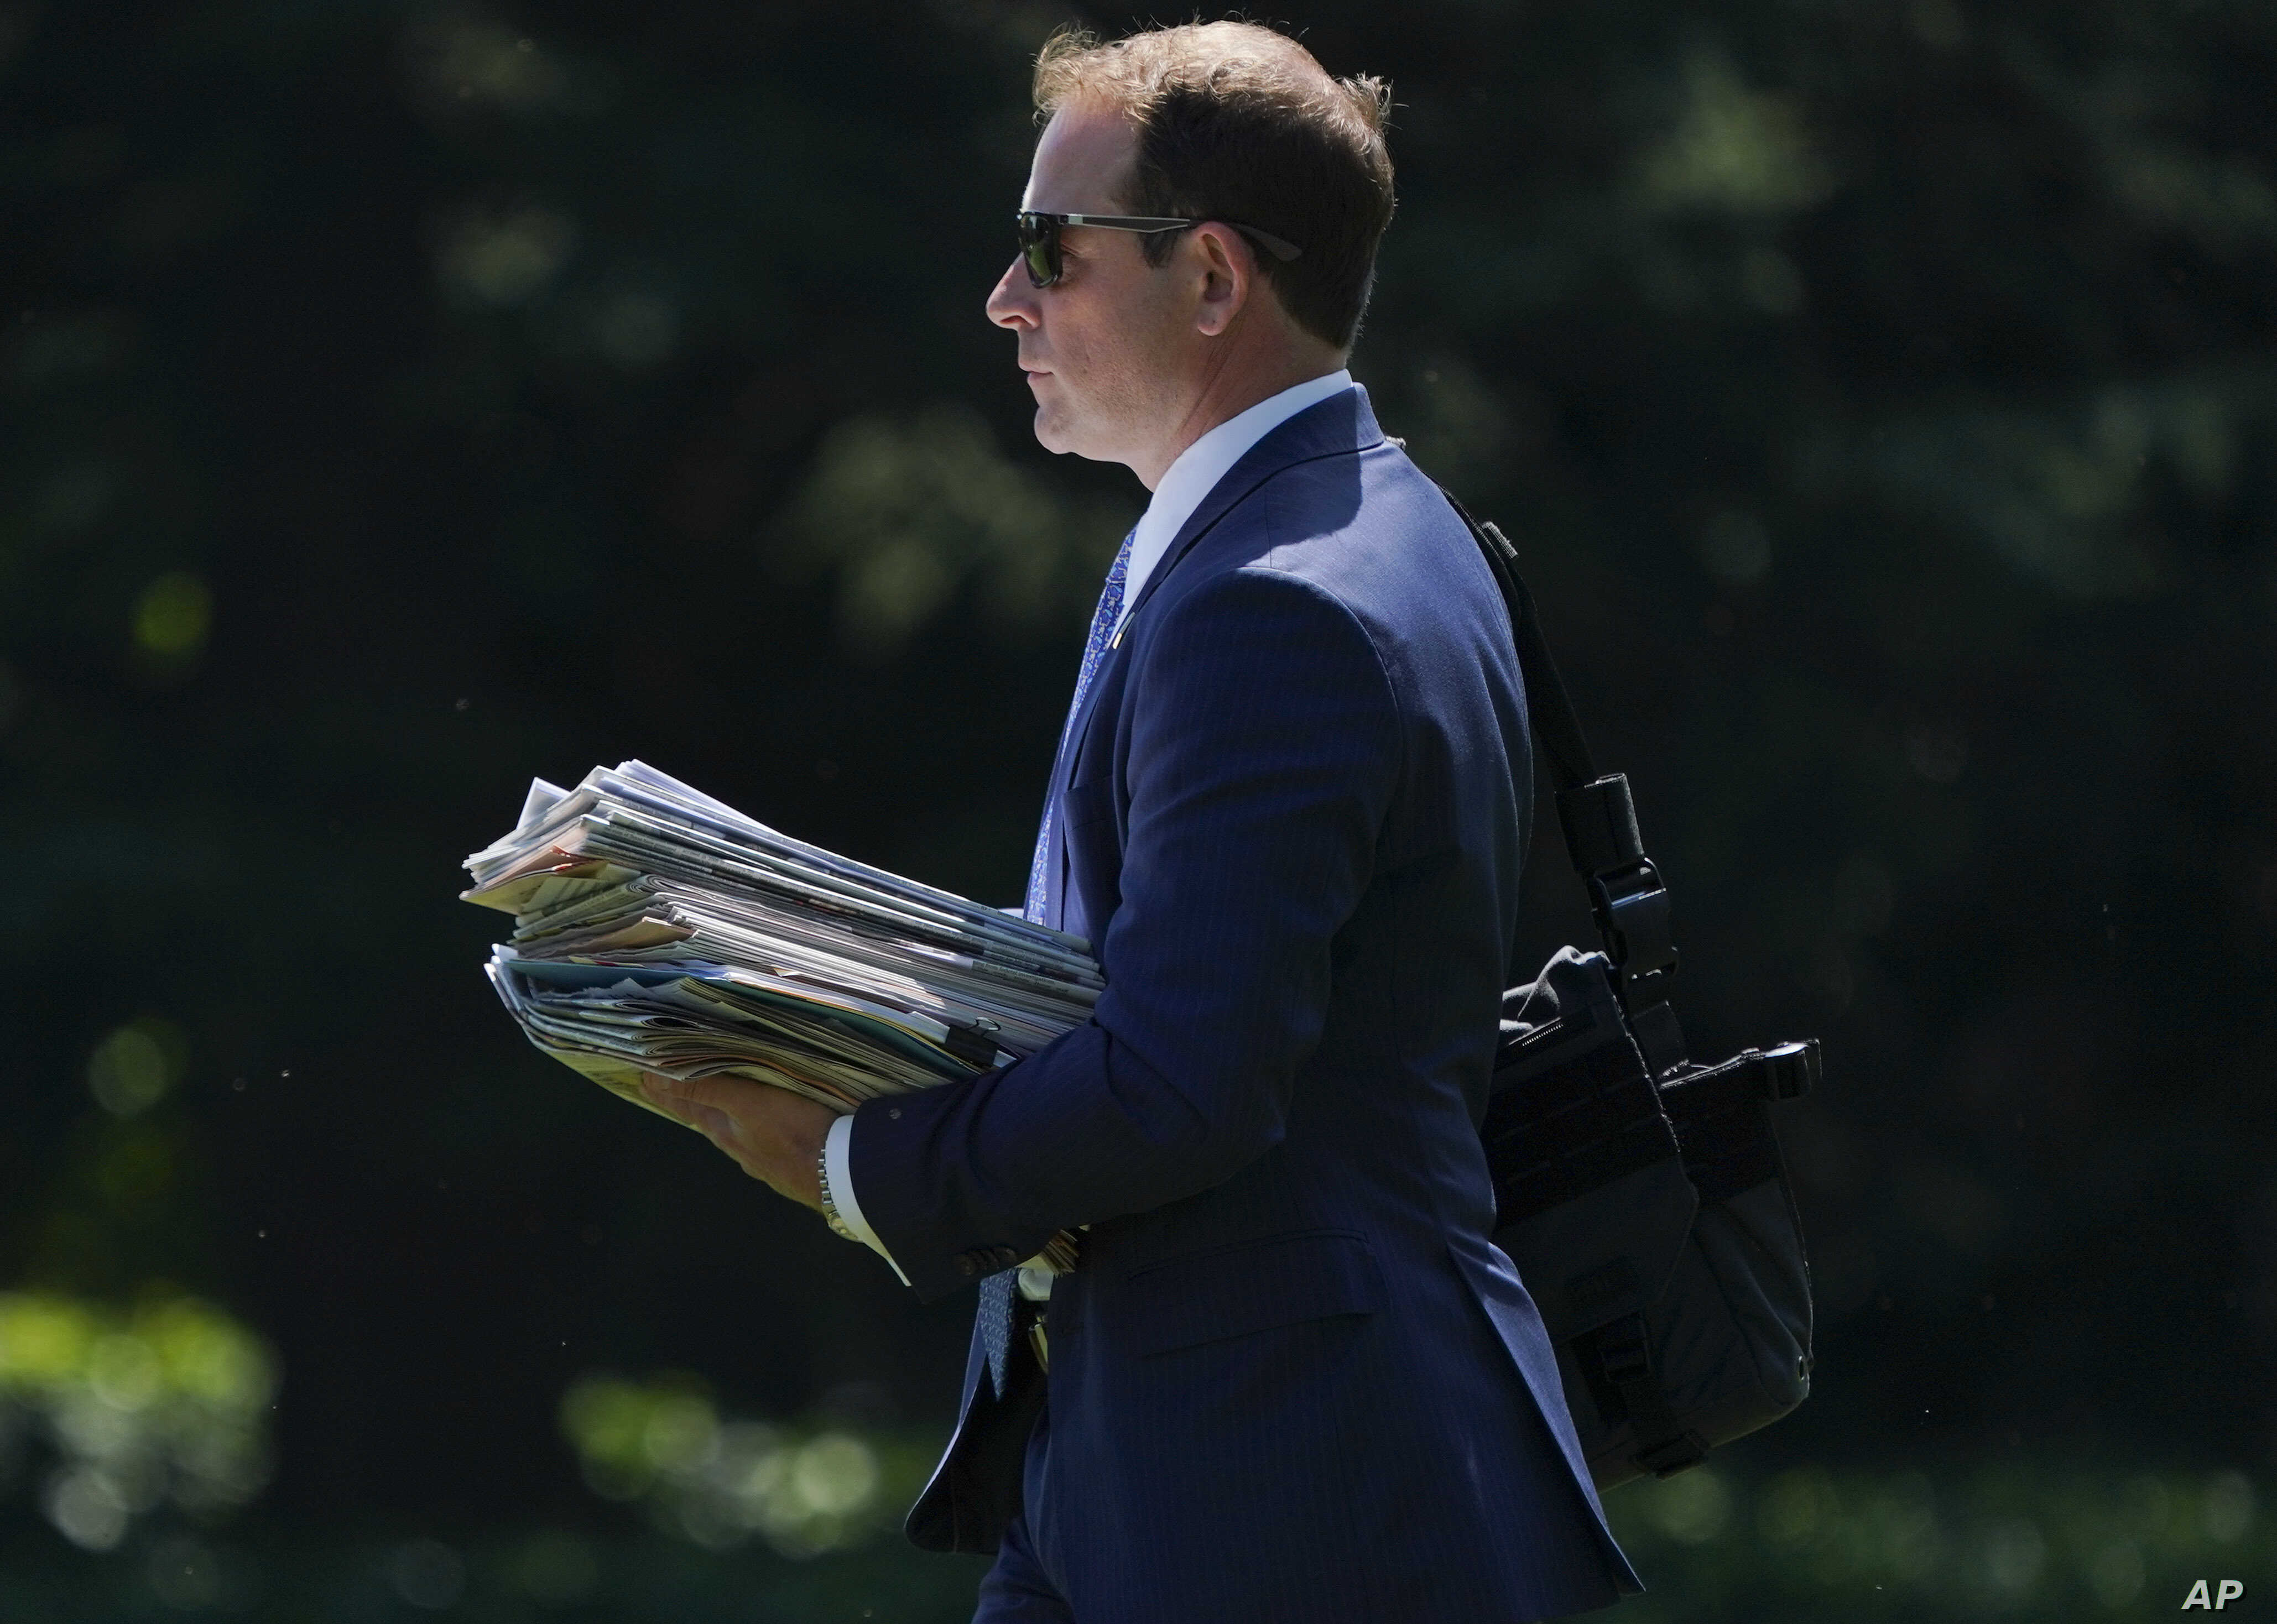 FILE - Jordan Karem, right, Deputy Assistant to the President and Director of Oval Office Operations, carries newspapers as he walks across the South Lawn of the White House in Washington, Aug. 24, 2018.